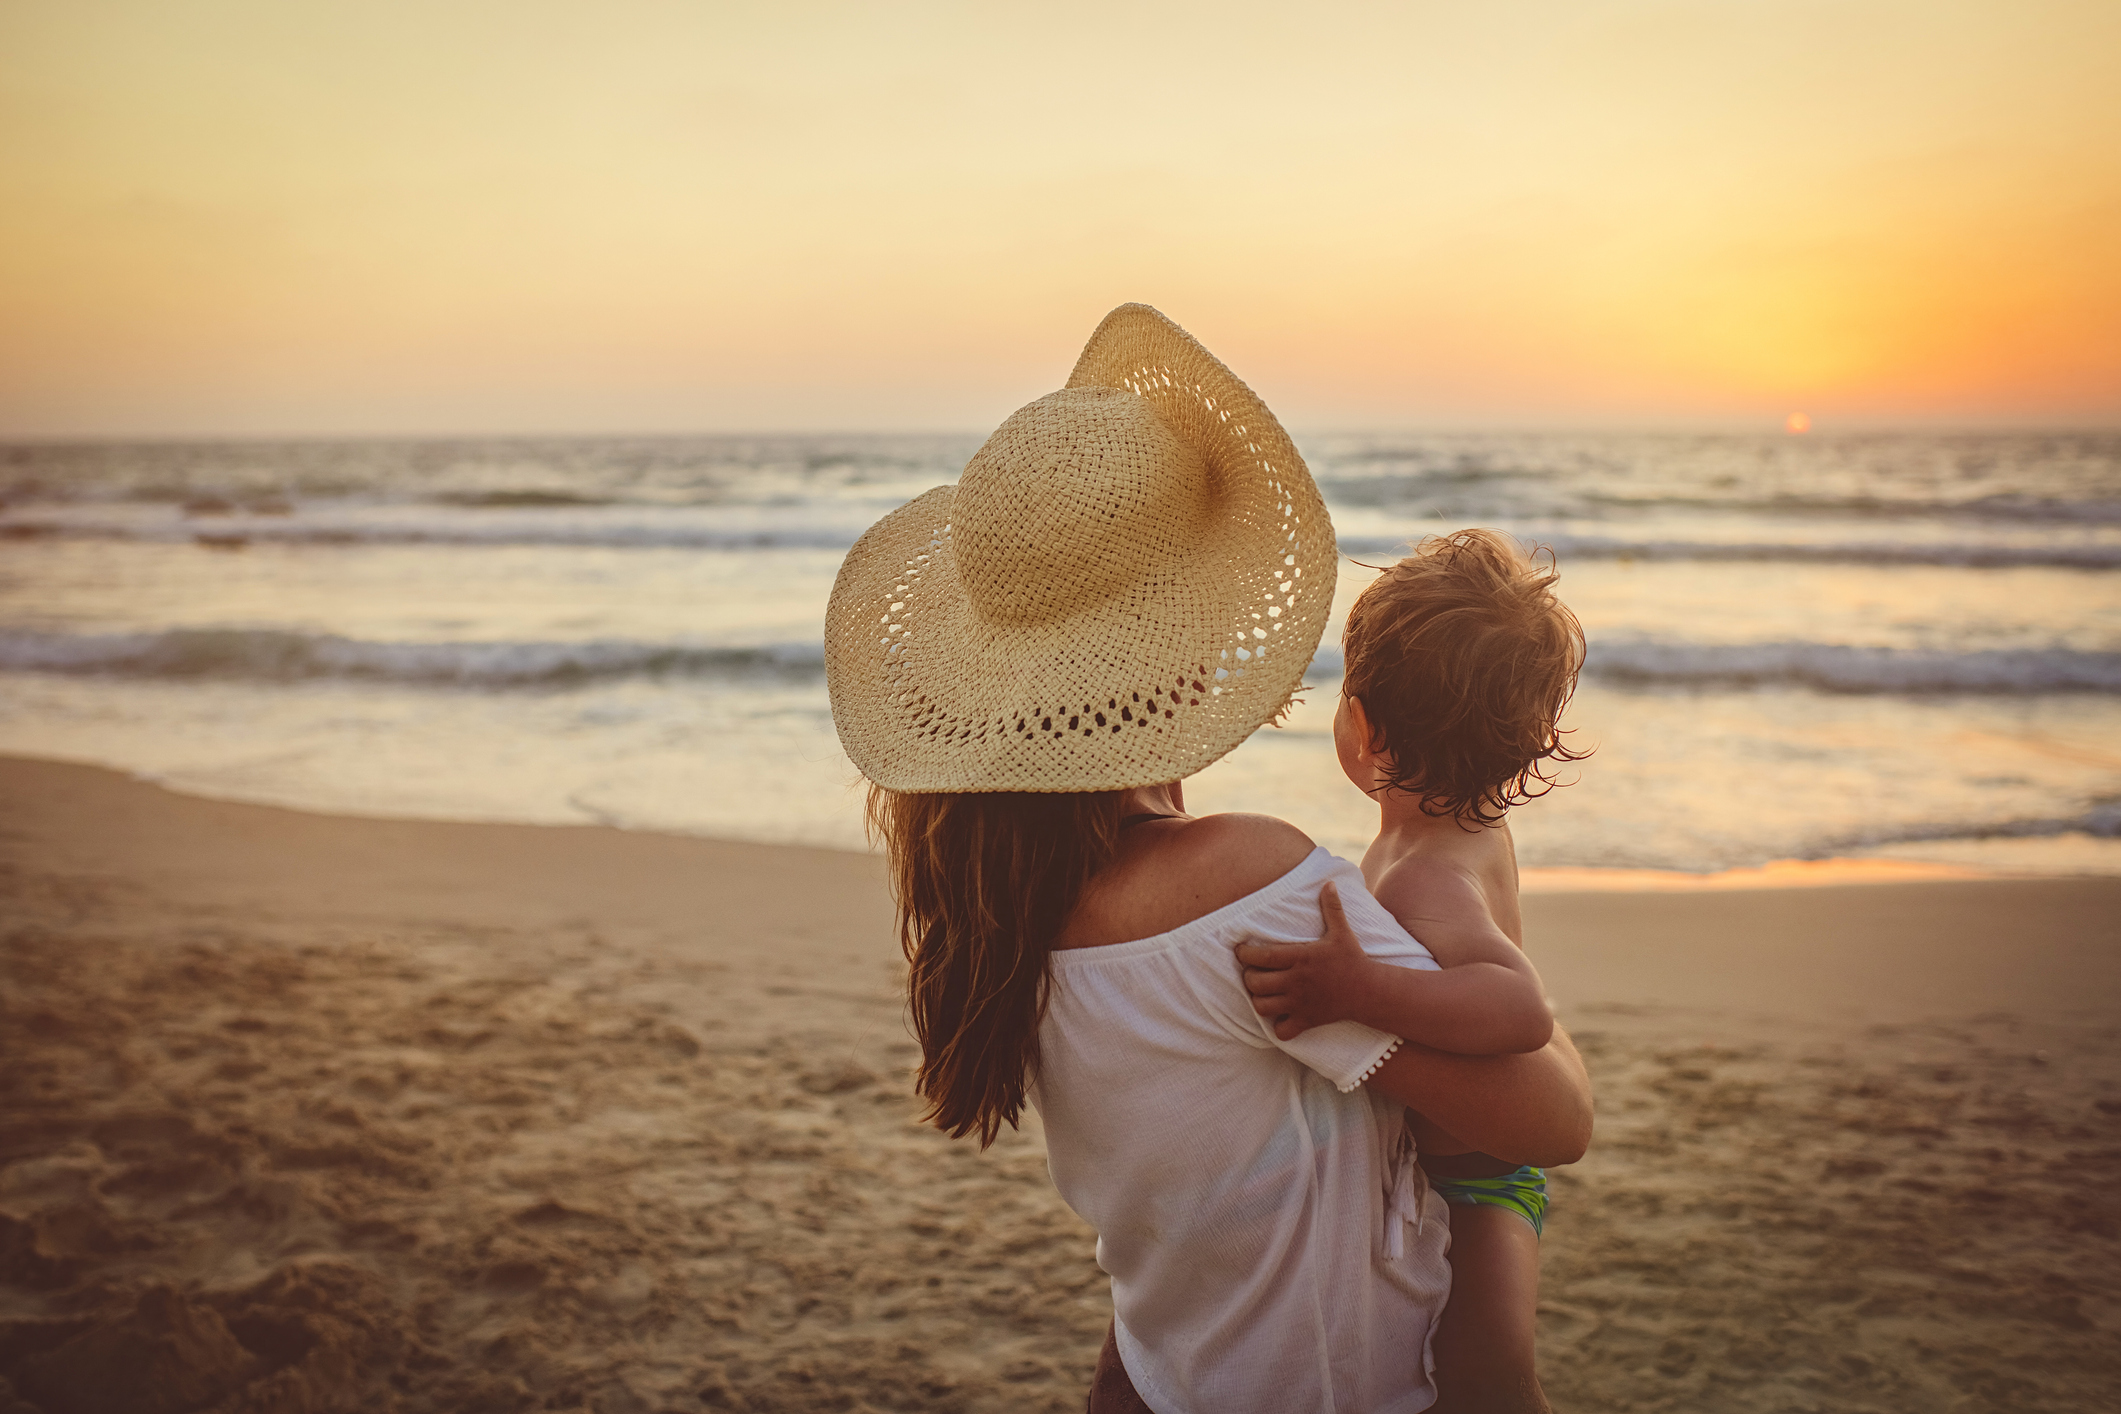 Baby Beach Hacks 20 Mom Approved Tips to Make It Manageable